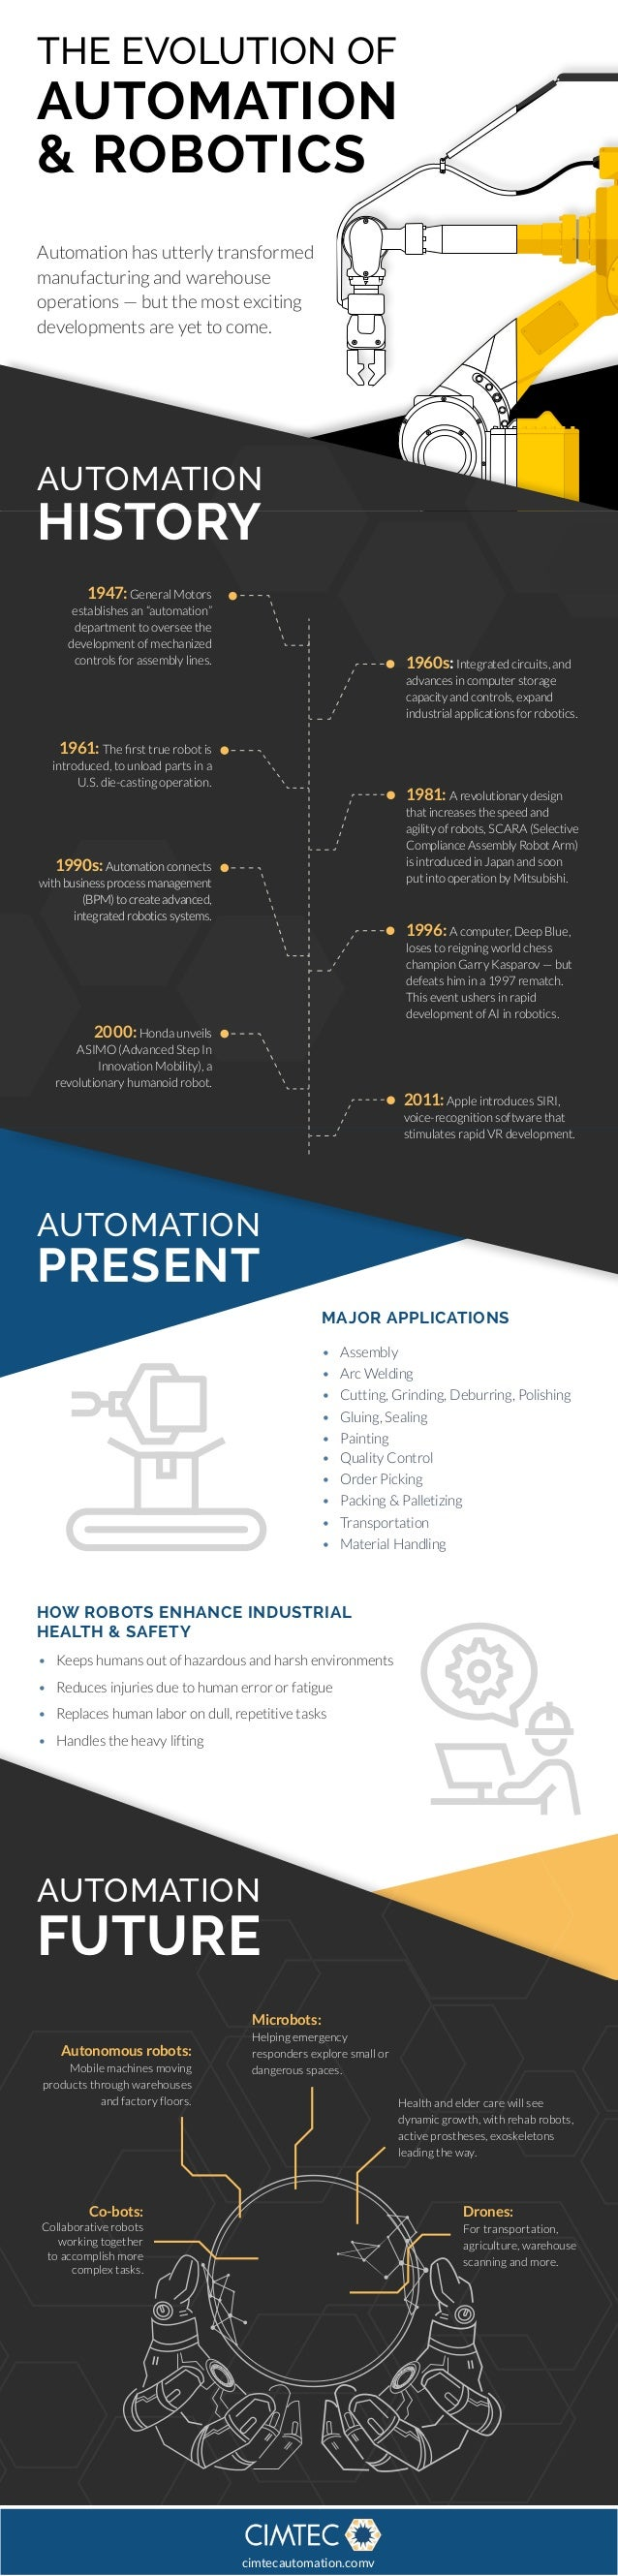 THE EVOLUTION OF AUTOMATION & ROBOTICS Automation has utterly transformed manufacturing and warehouse operations — but the...